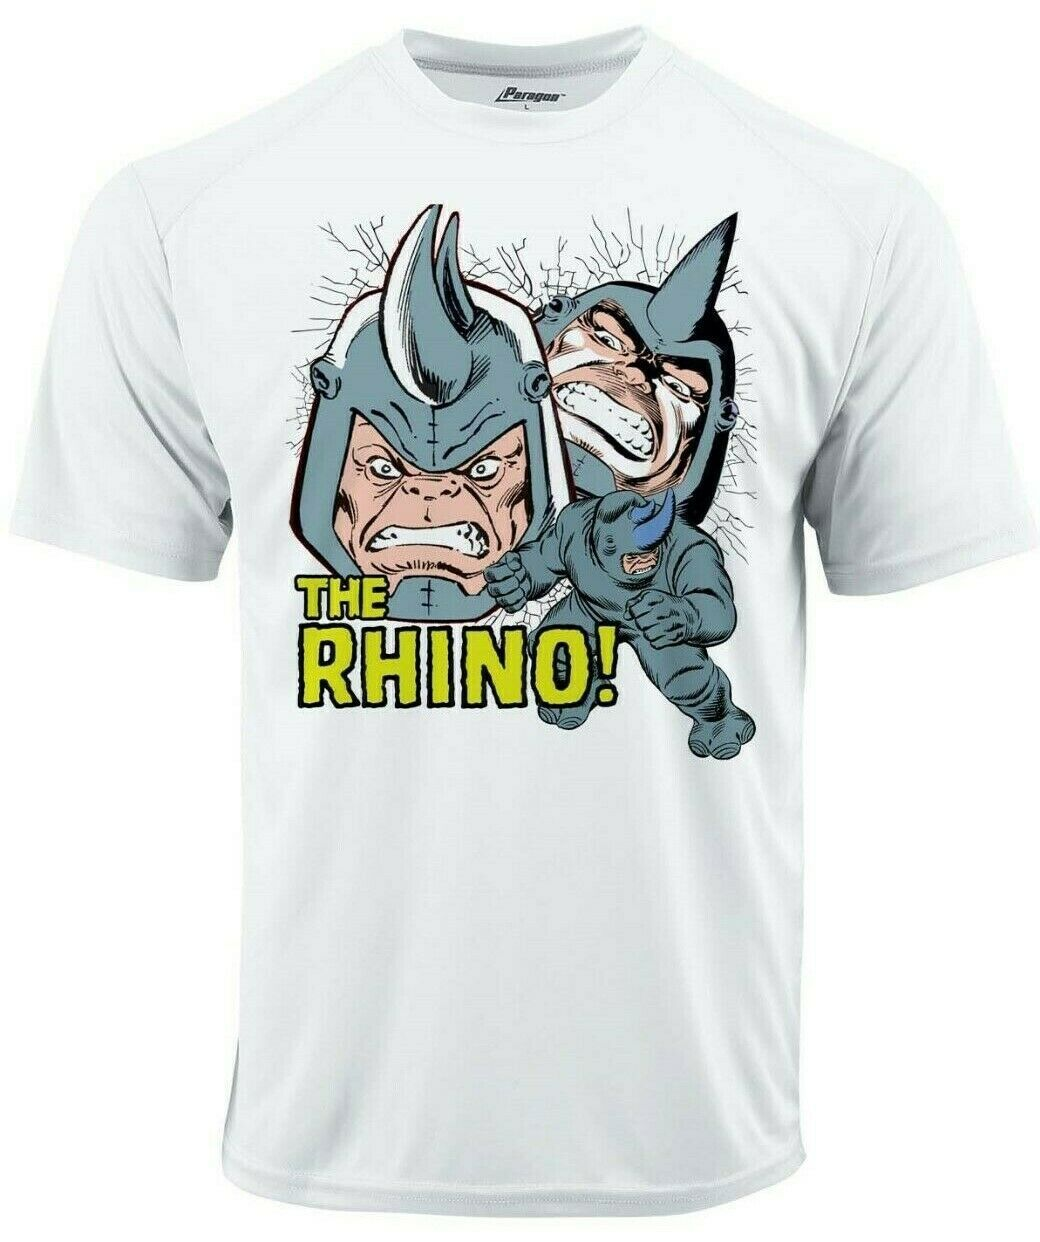 Rhino crack dri fit graphic tshirt moisture wicking superhero comic book spf tee white